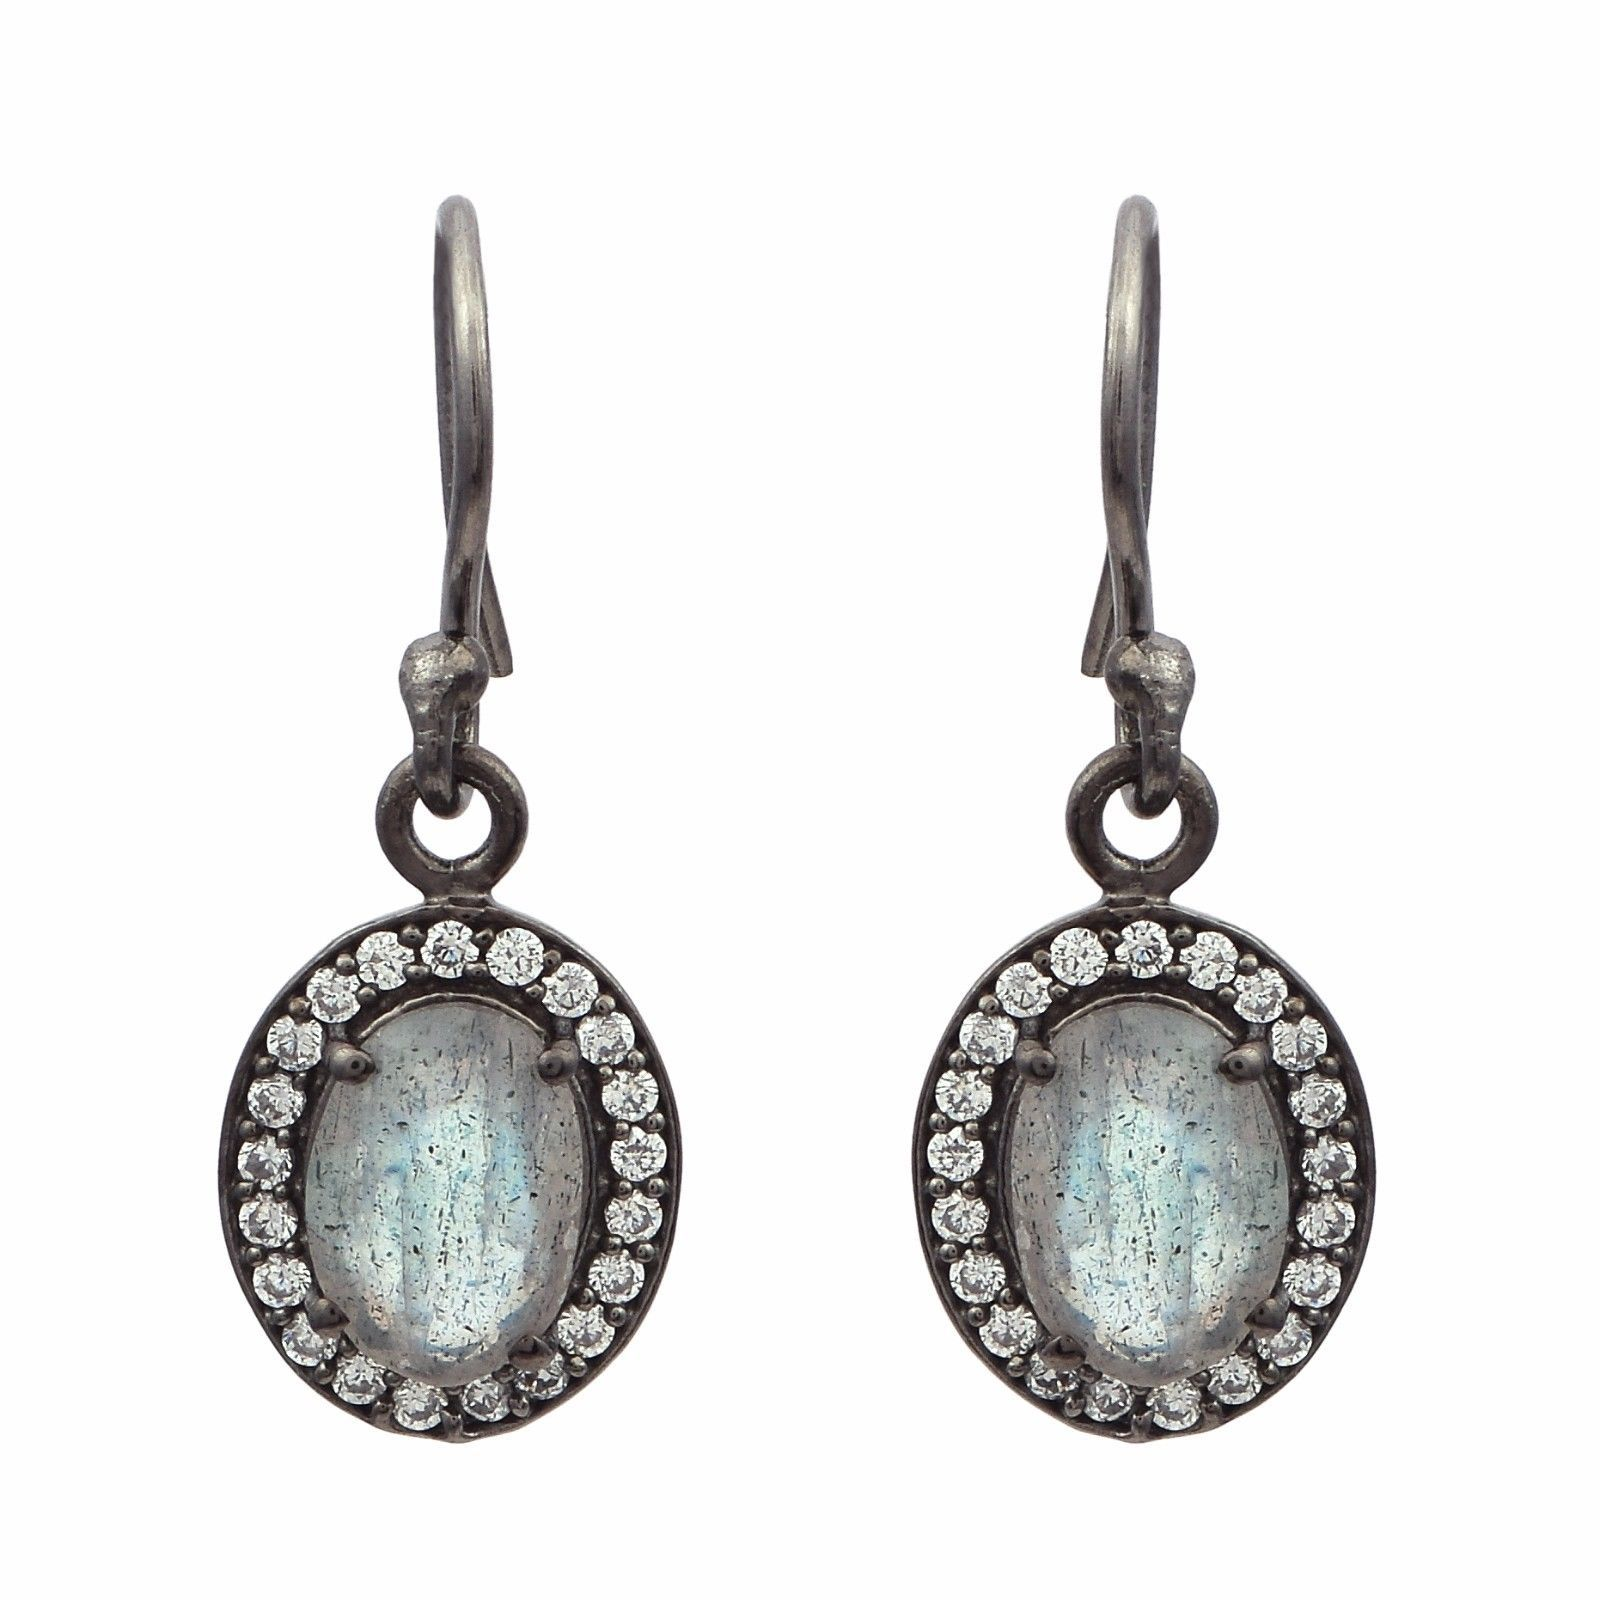 Labradorite & Cubic Zirconia 925 Sterling Silver Earring Shine Jewelry SHER0807